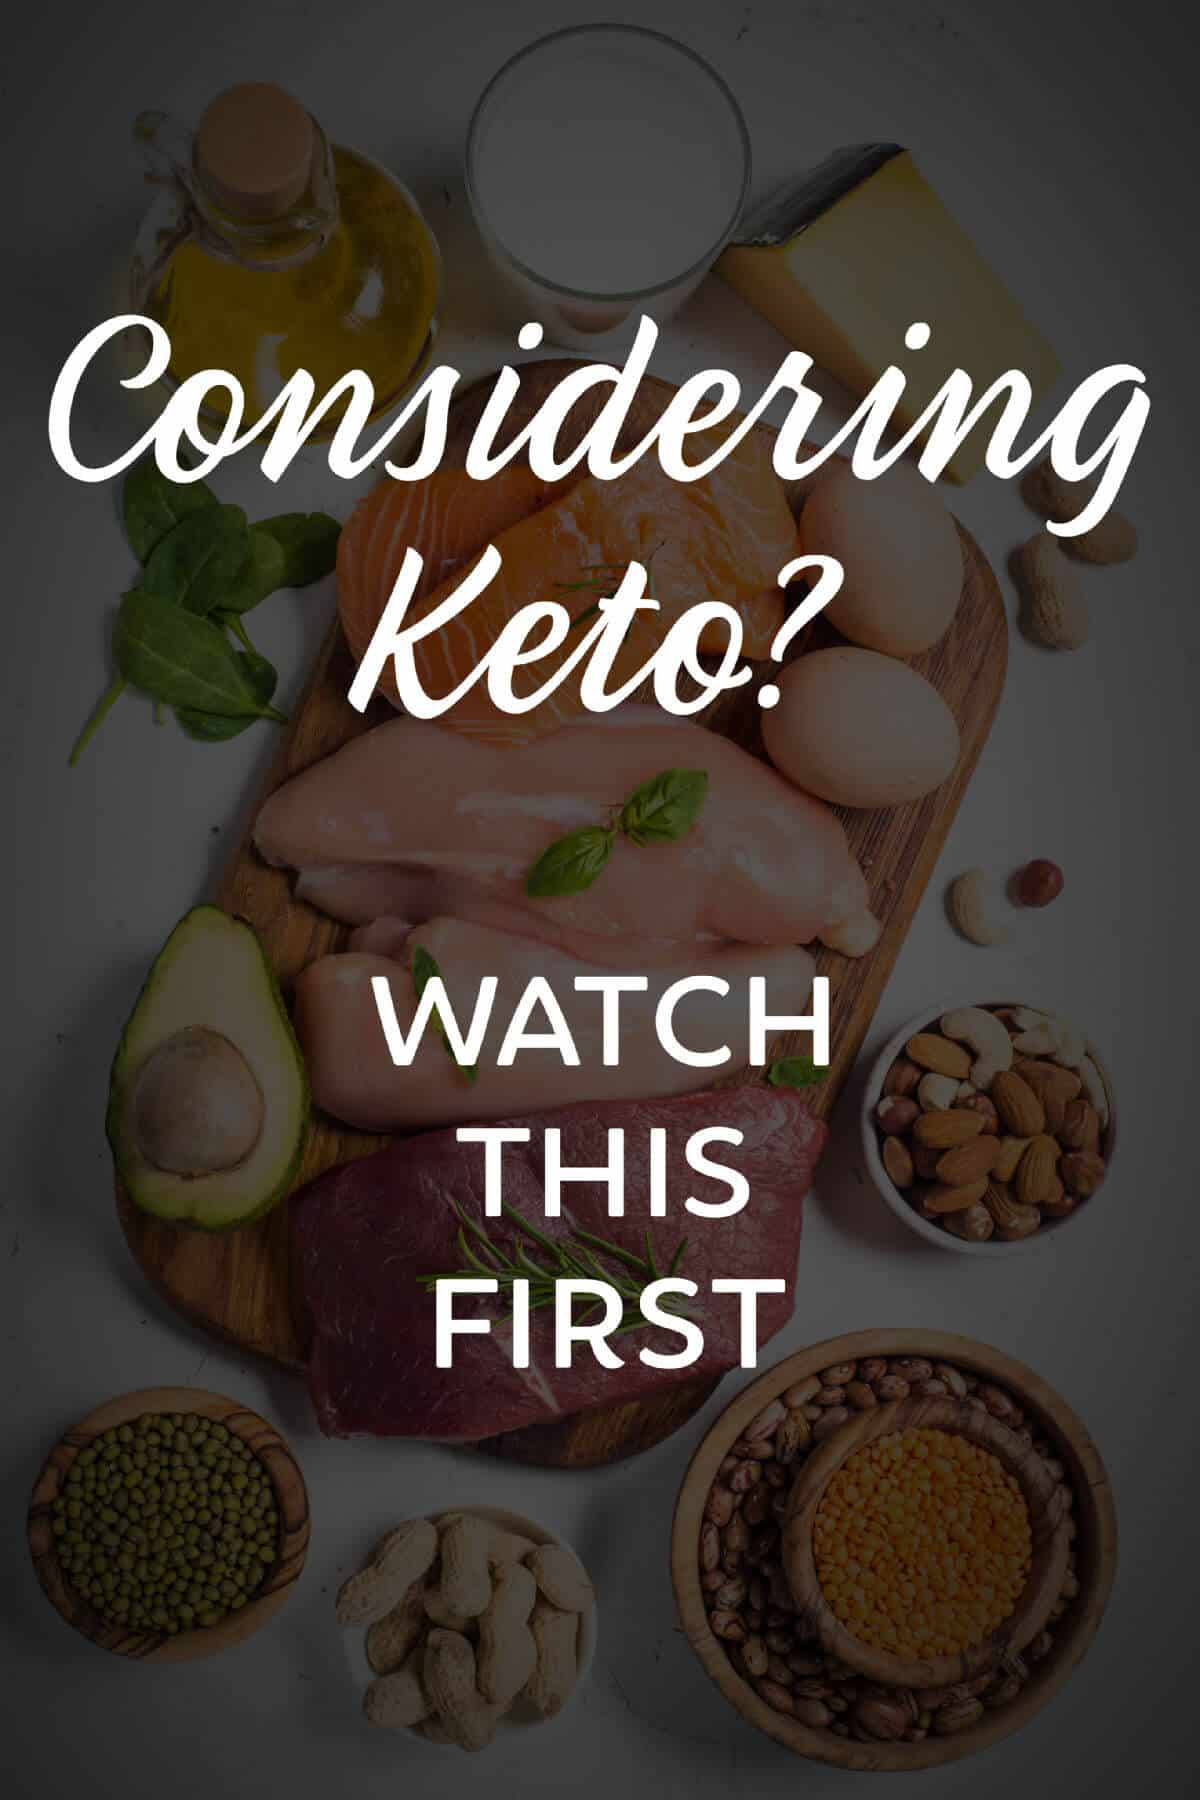 Considering Keto - Watch This First - Find Out More About The Keto Diet #ad #keto #diet #ketodiet